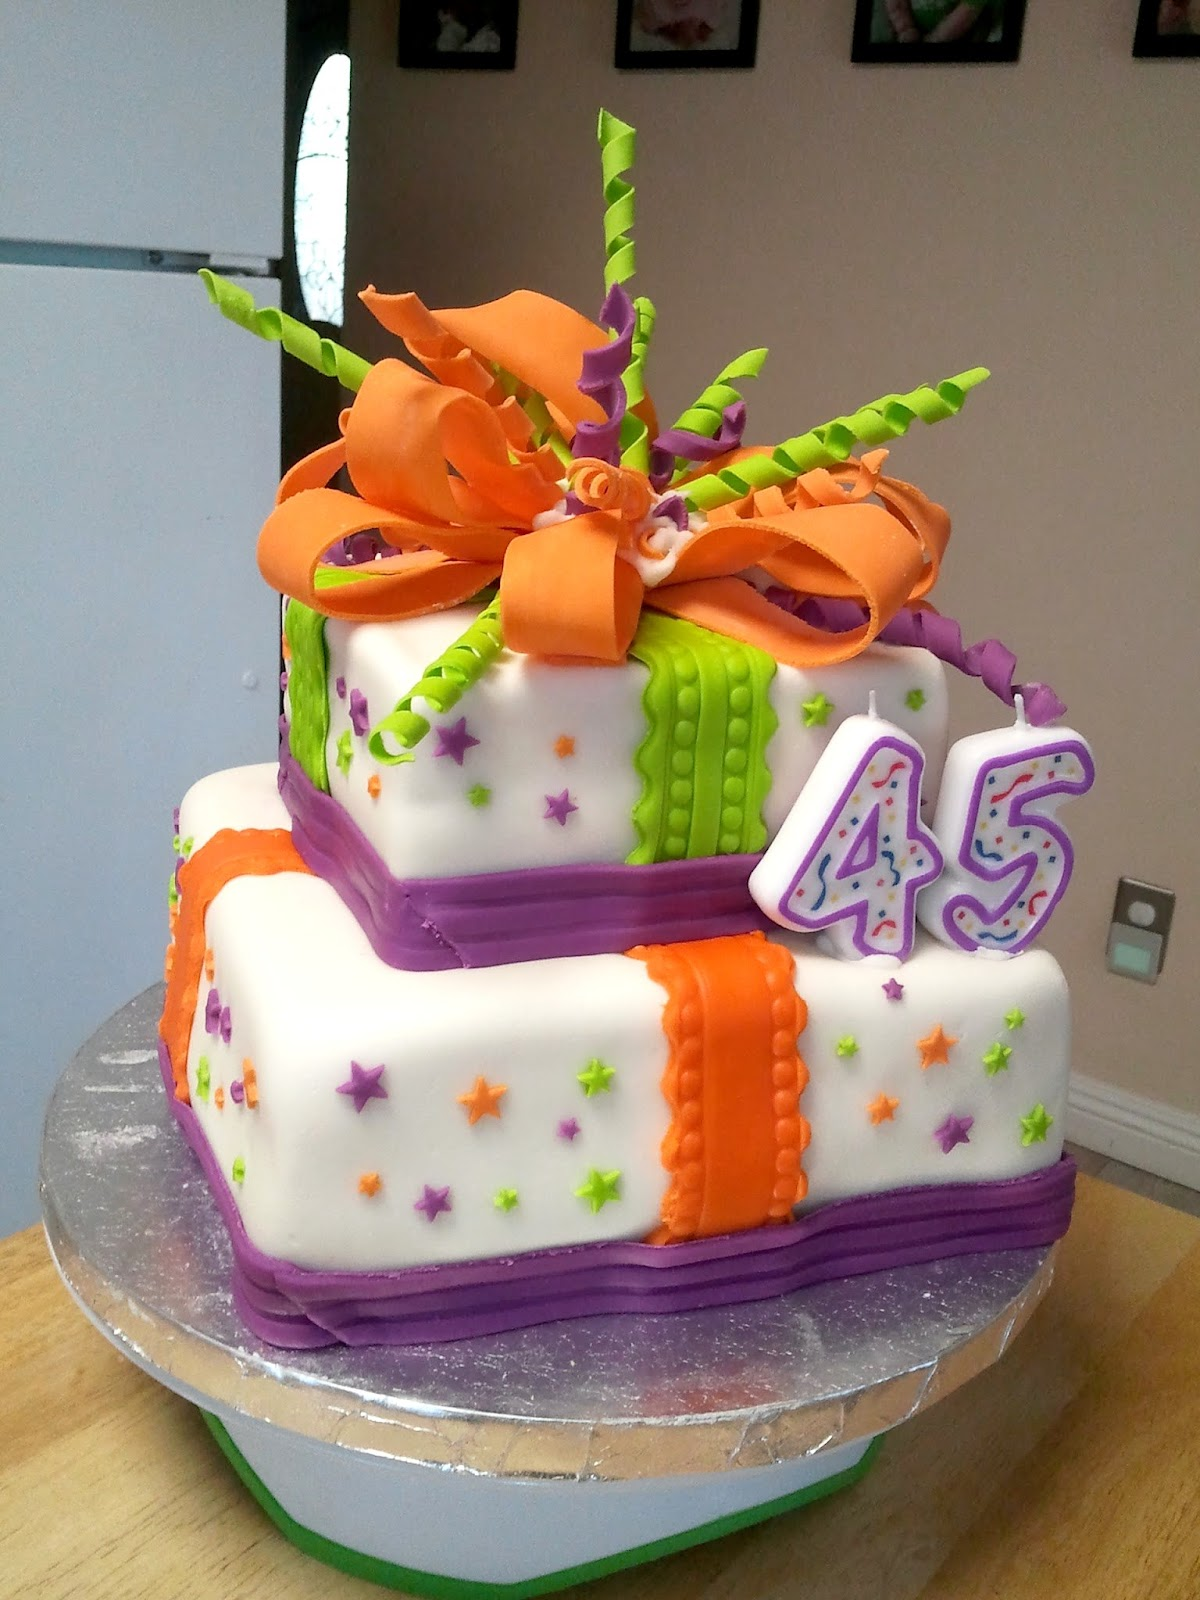 Tiered Fondant Birthday Present Cake